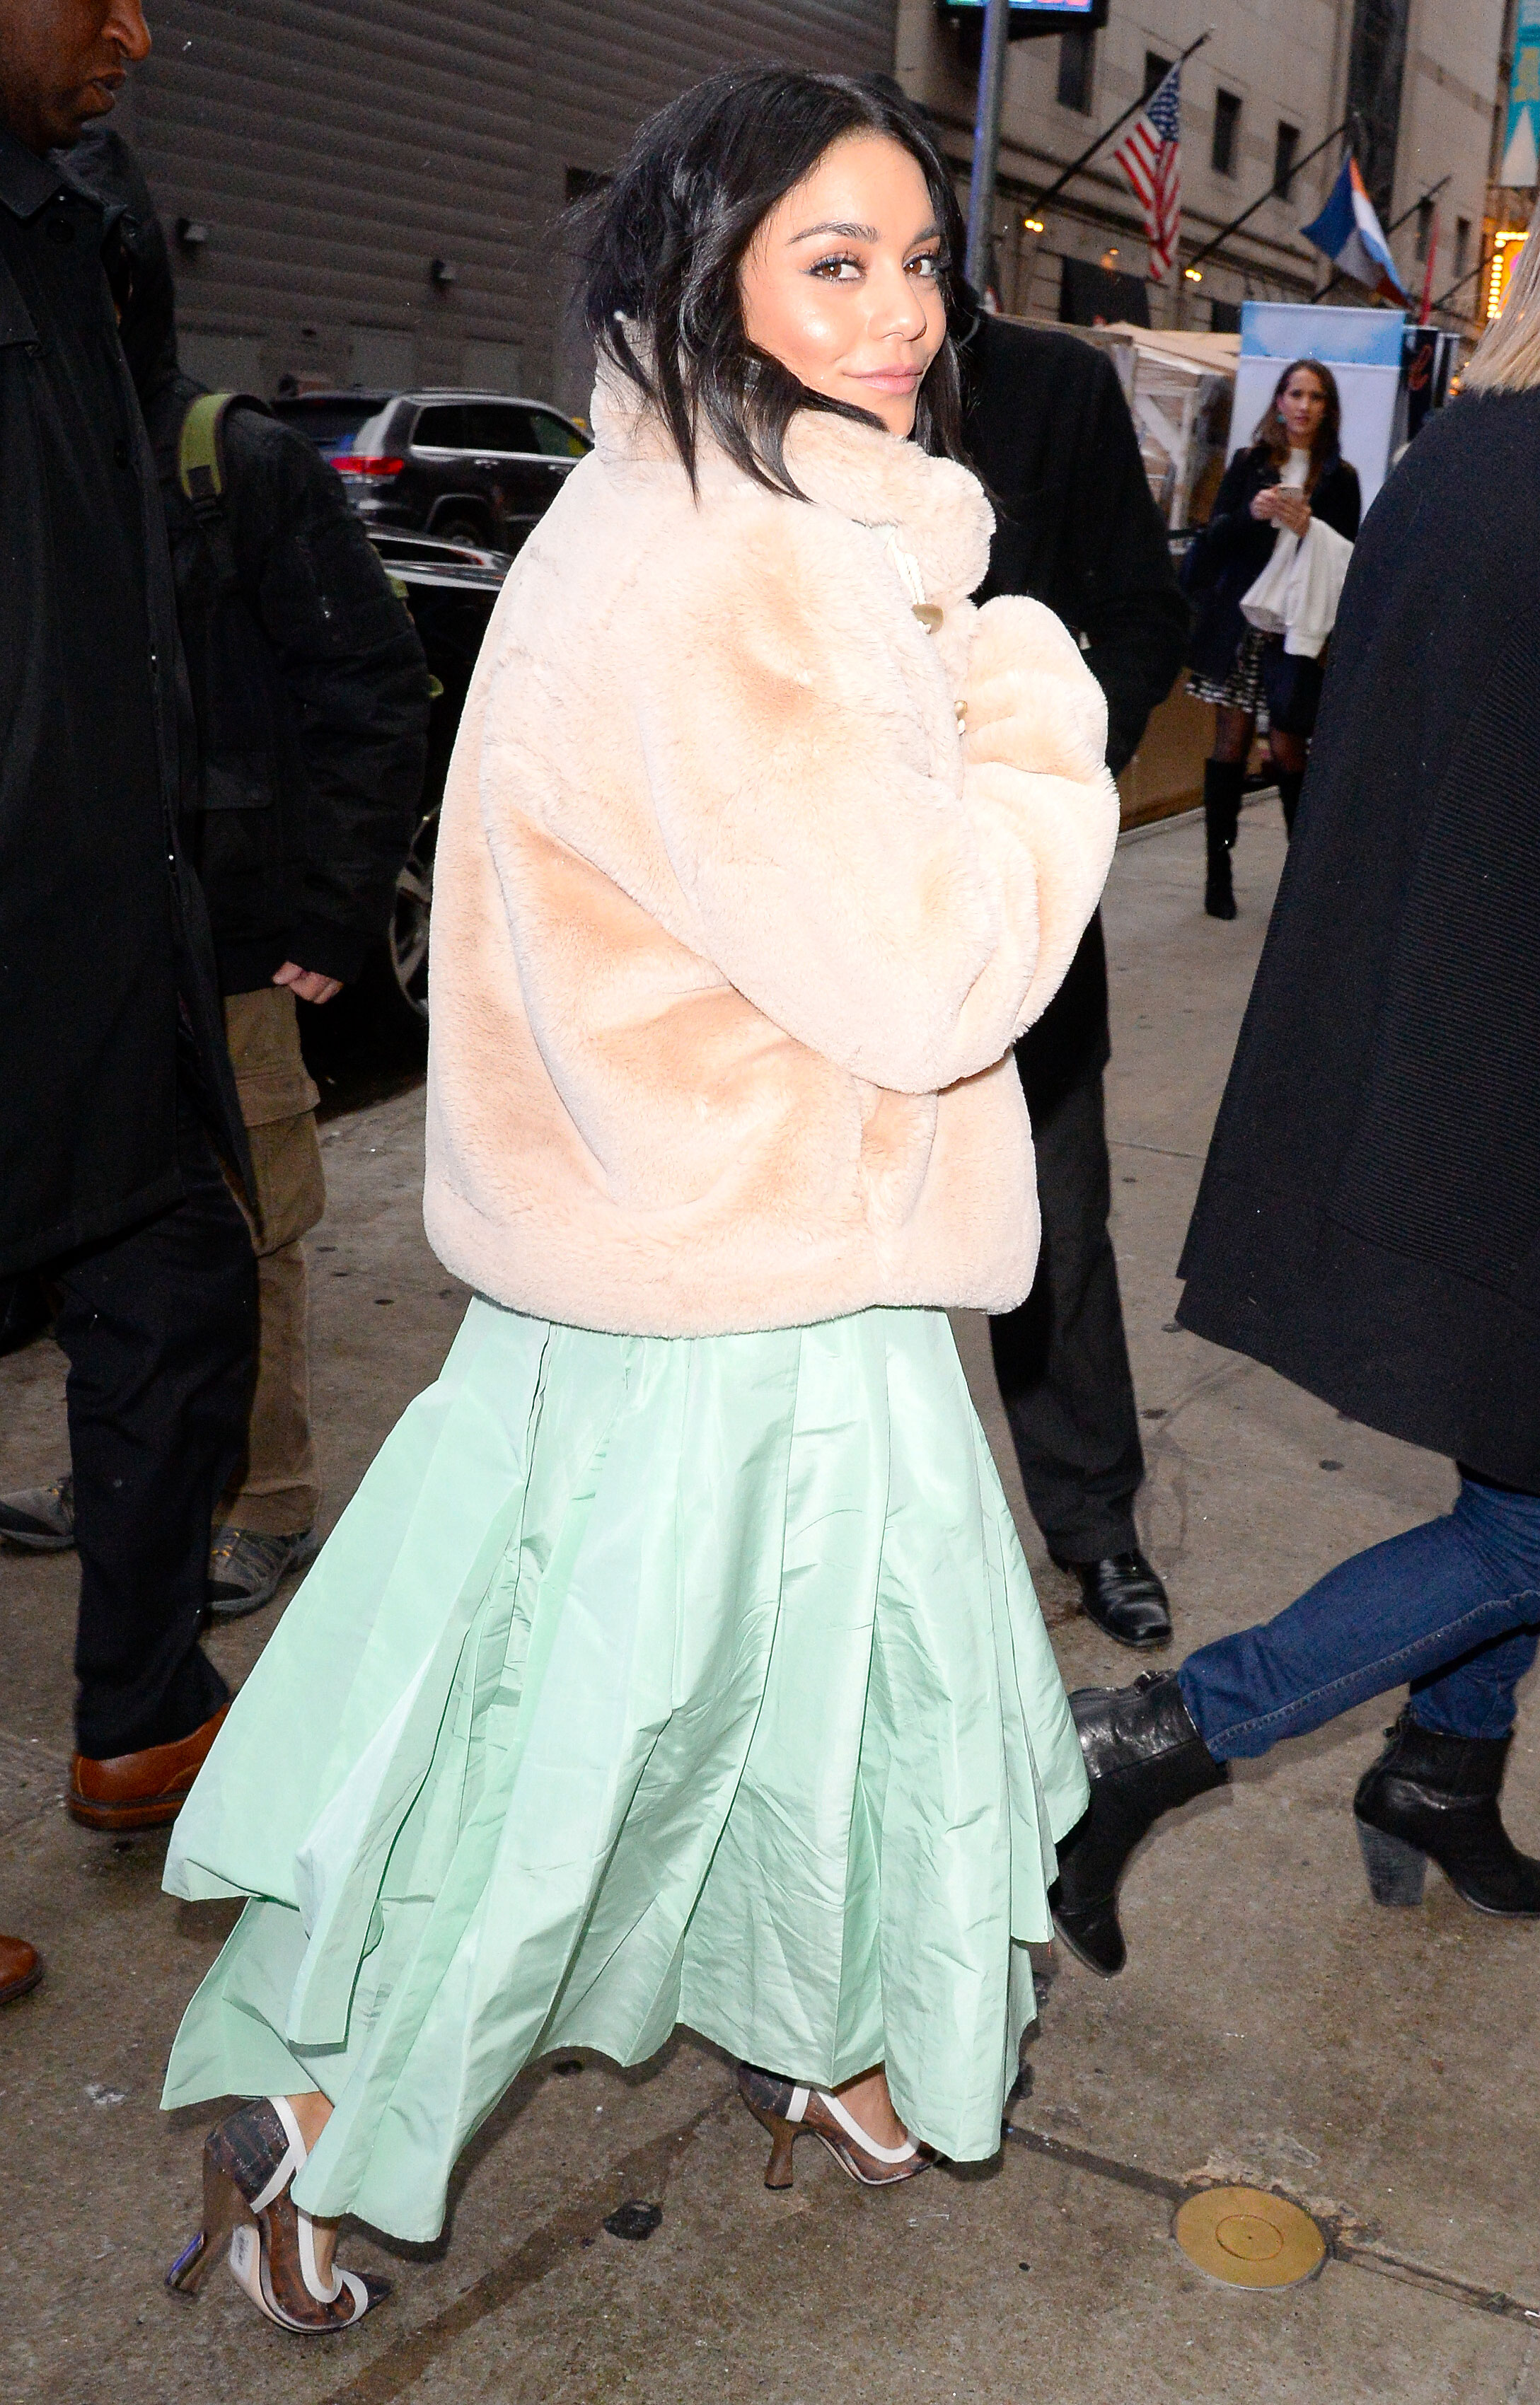 vanessa-hudgens-tan-coat - Sure, we've still got a ways to go until the first signs of spring, but we'll be filing this Golden Goose shearling look the Second Act star rocked in NYC on Thursday, December 13, away as the perfect way to rock our pastel dresses when the seasons start to change.